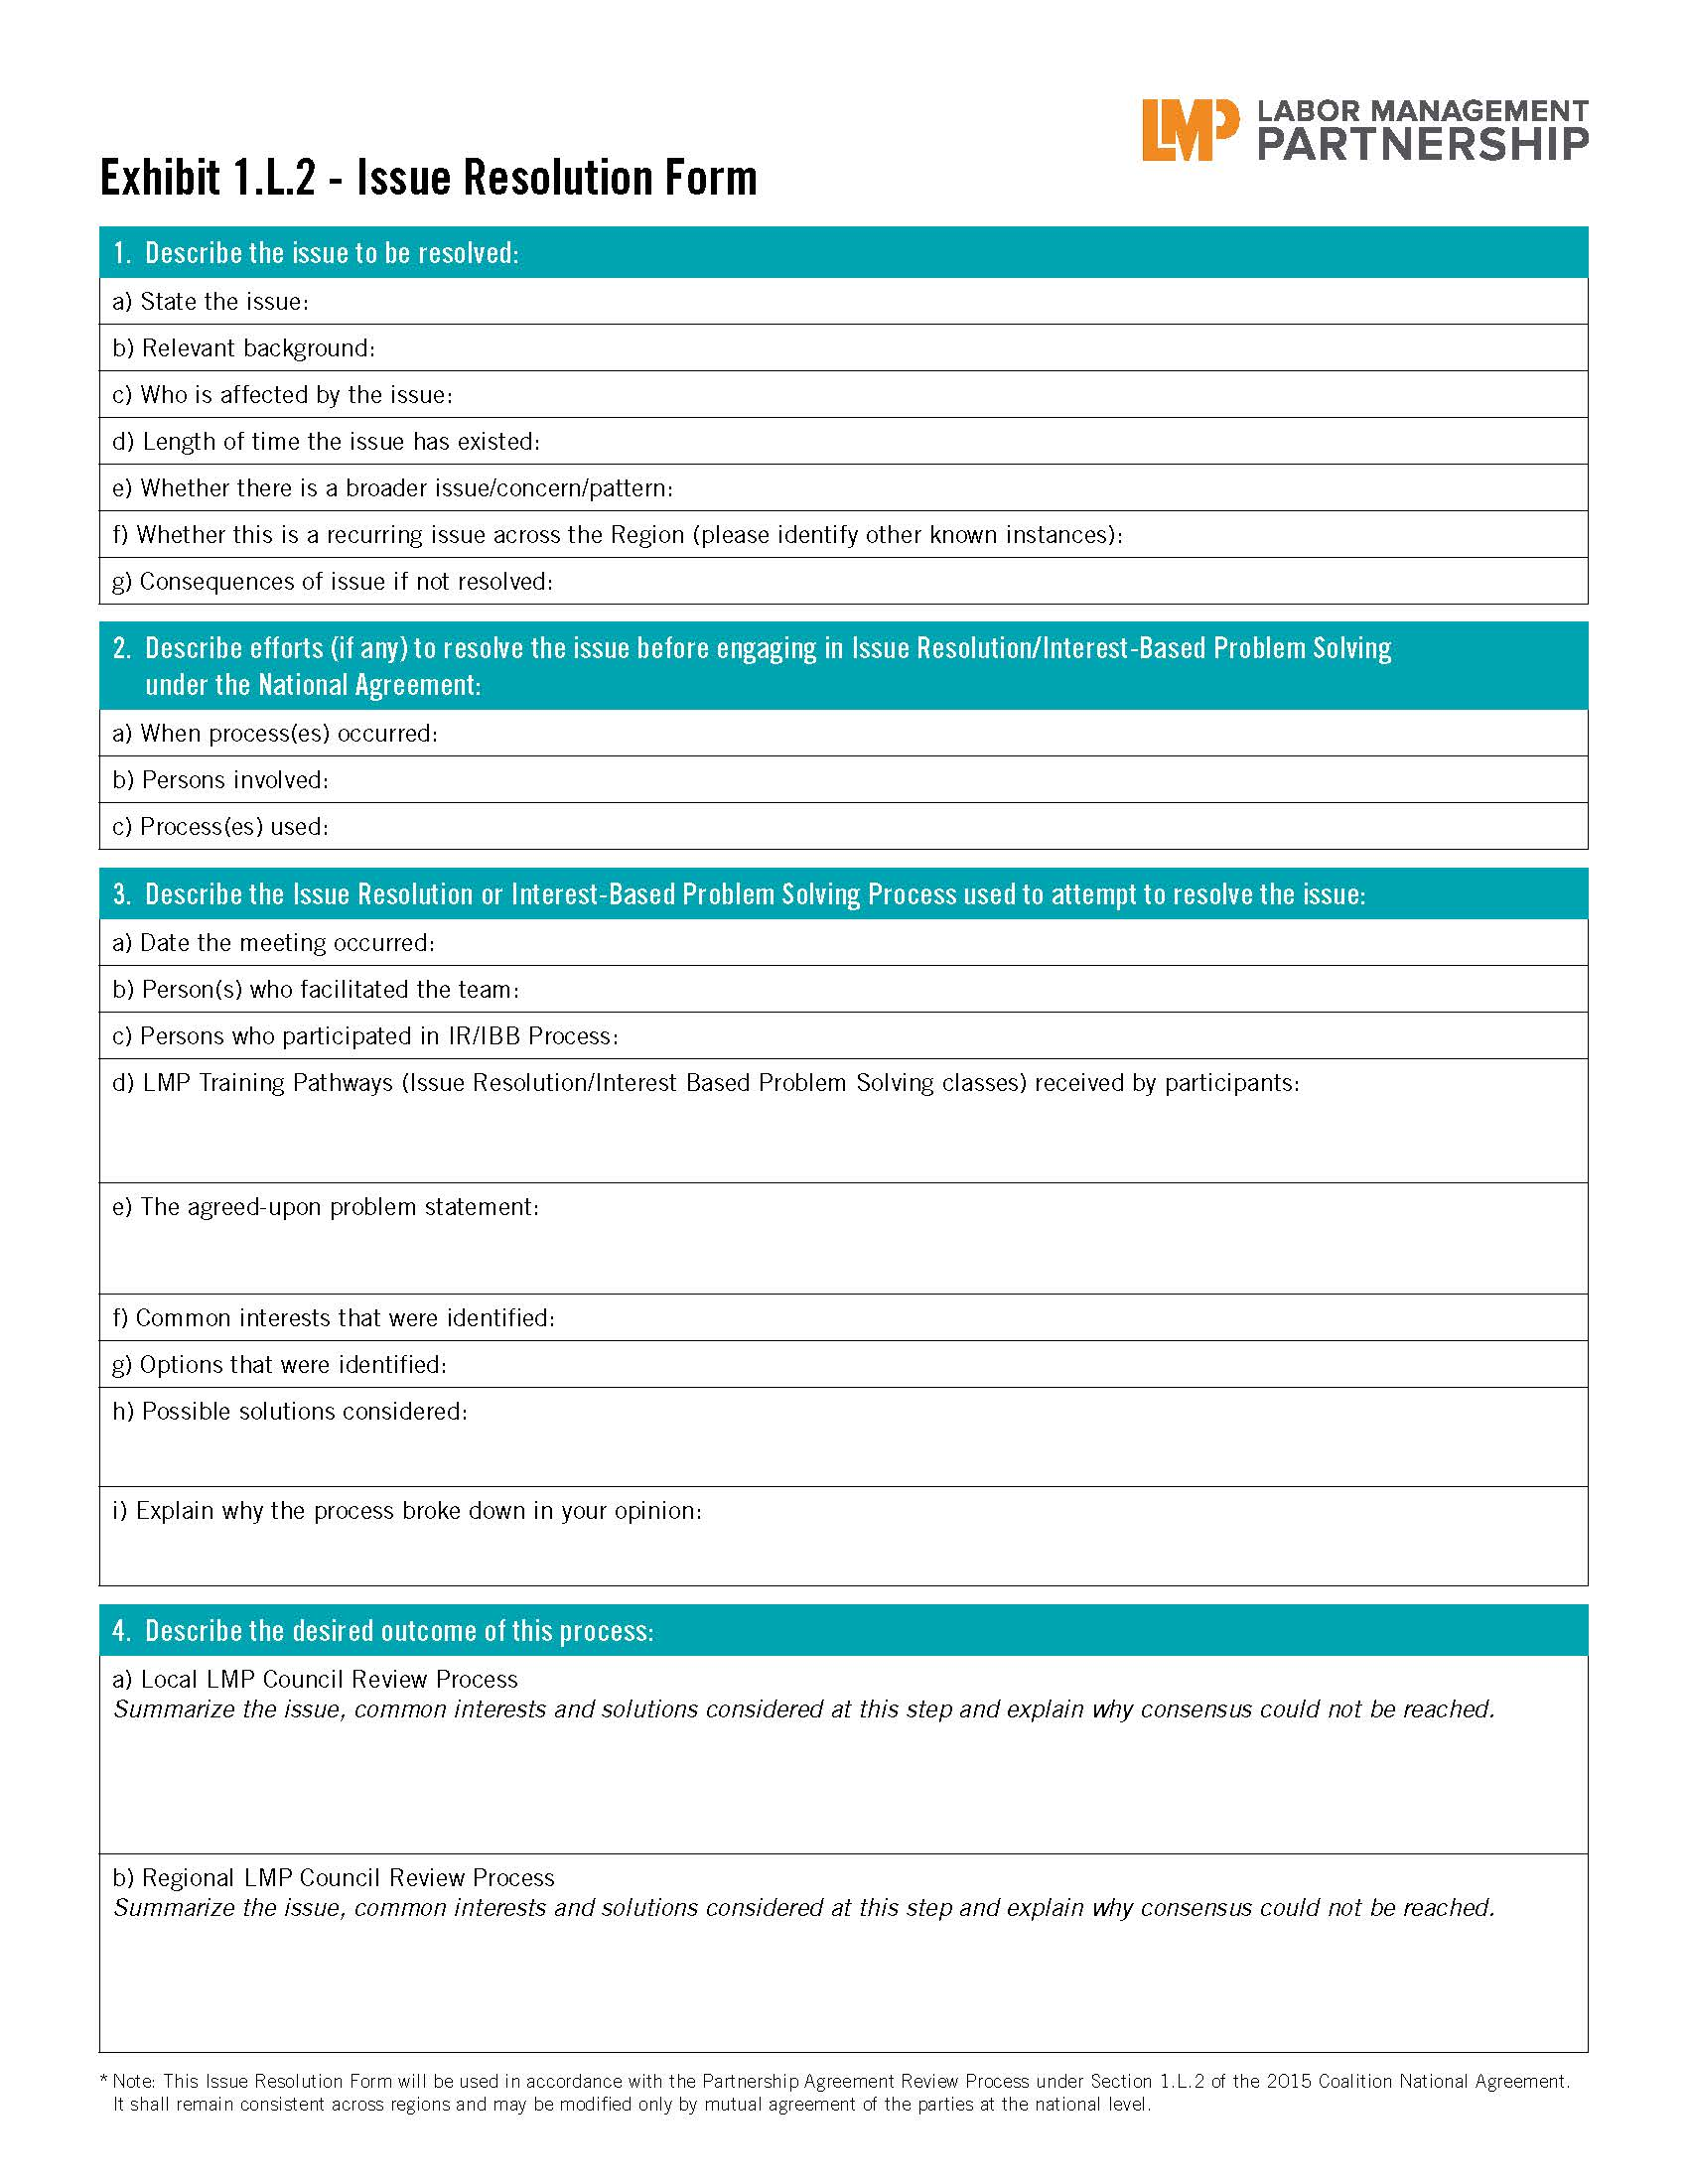 Issue resolution form